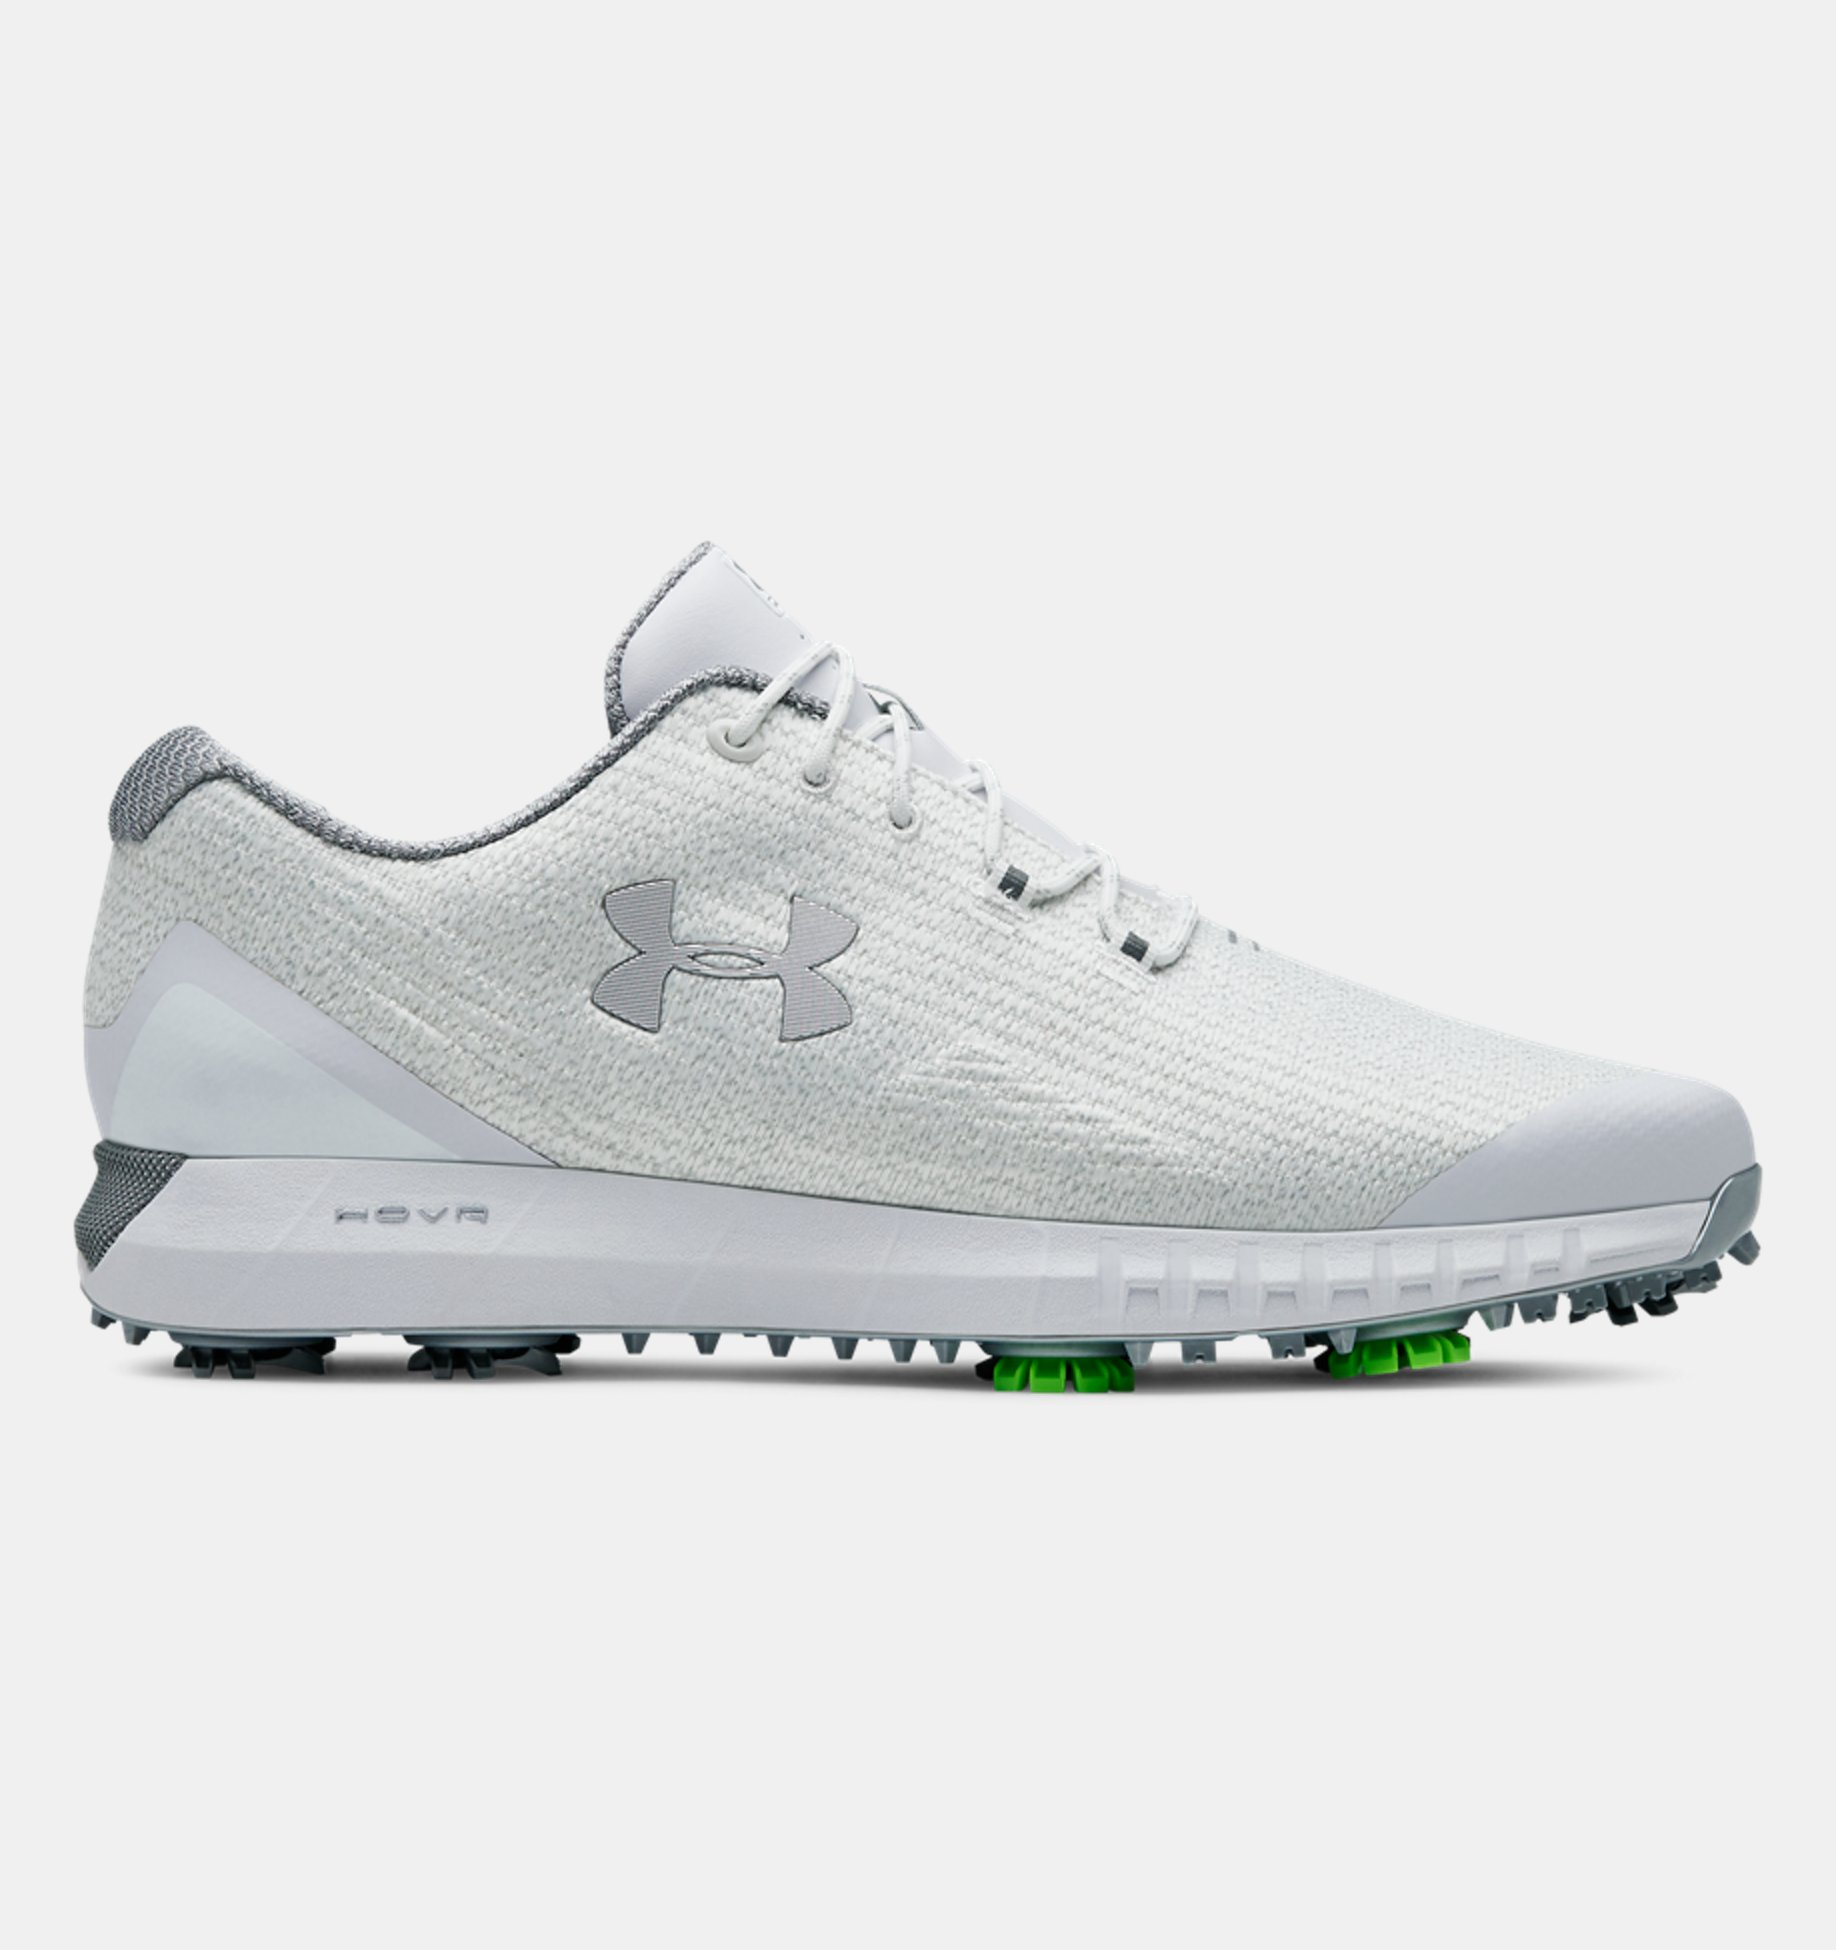 Under Armour HOVR Drive Woven Men's Golf Shoes